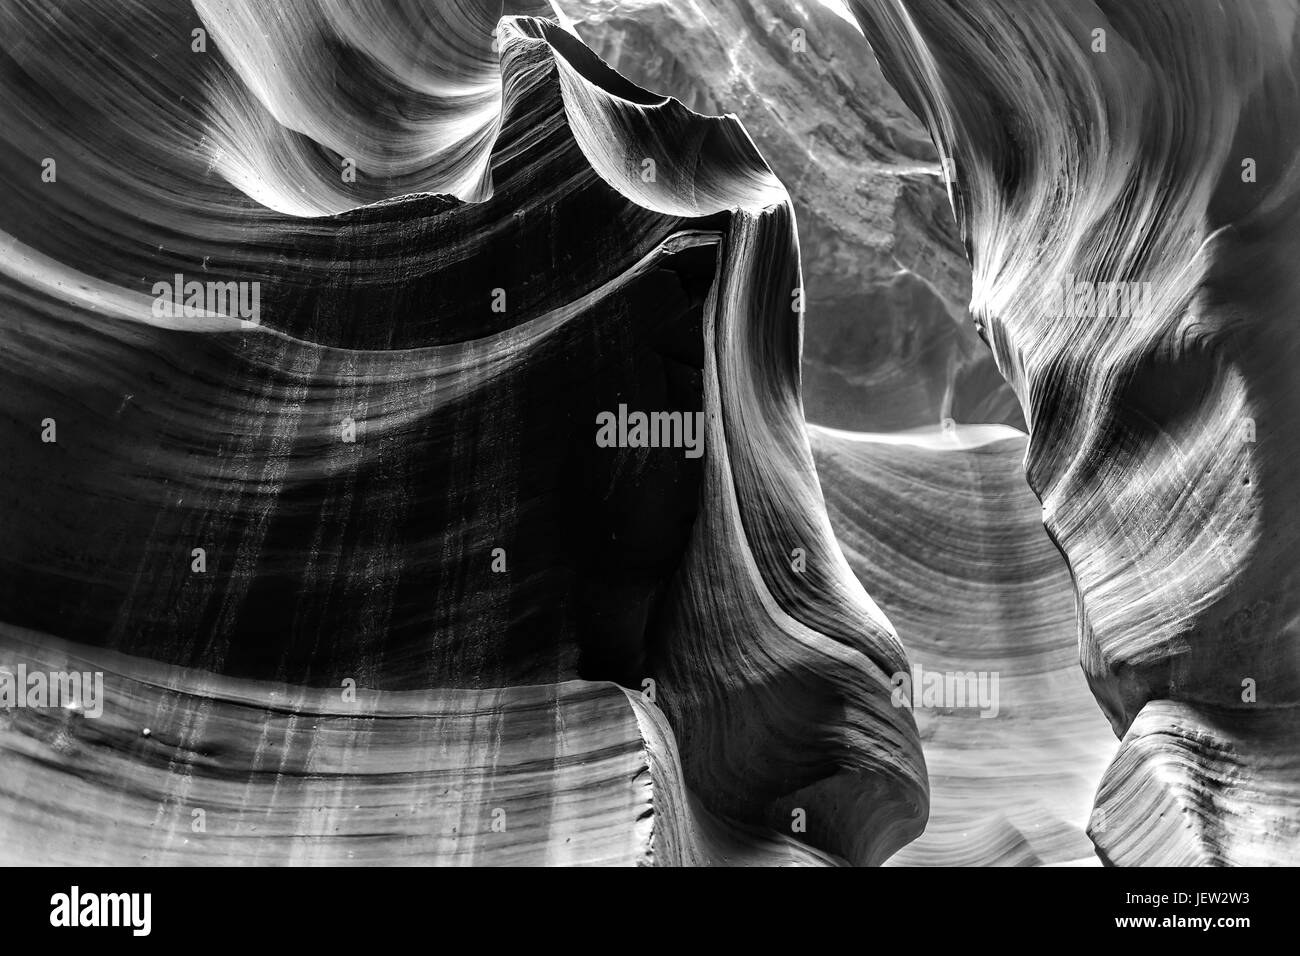 Lower Antelope Canyon in Arizona in Black and White - Stock Image